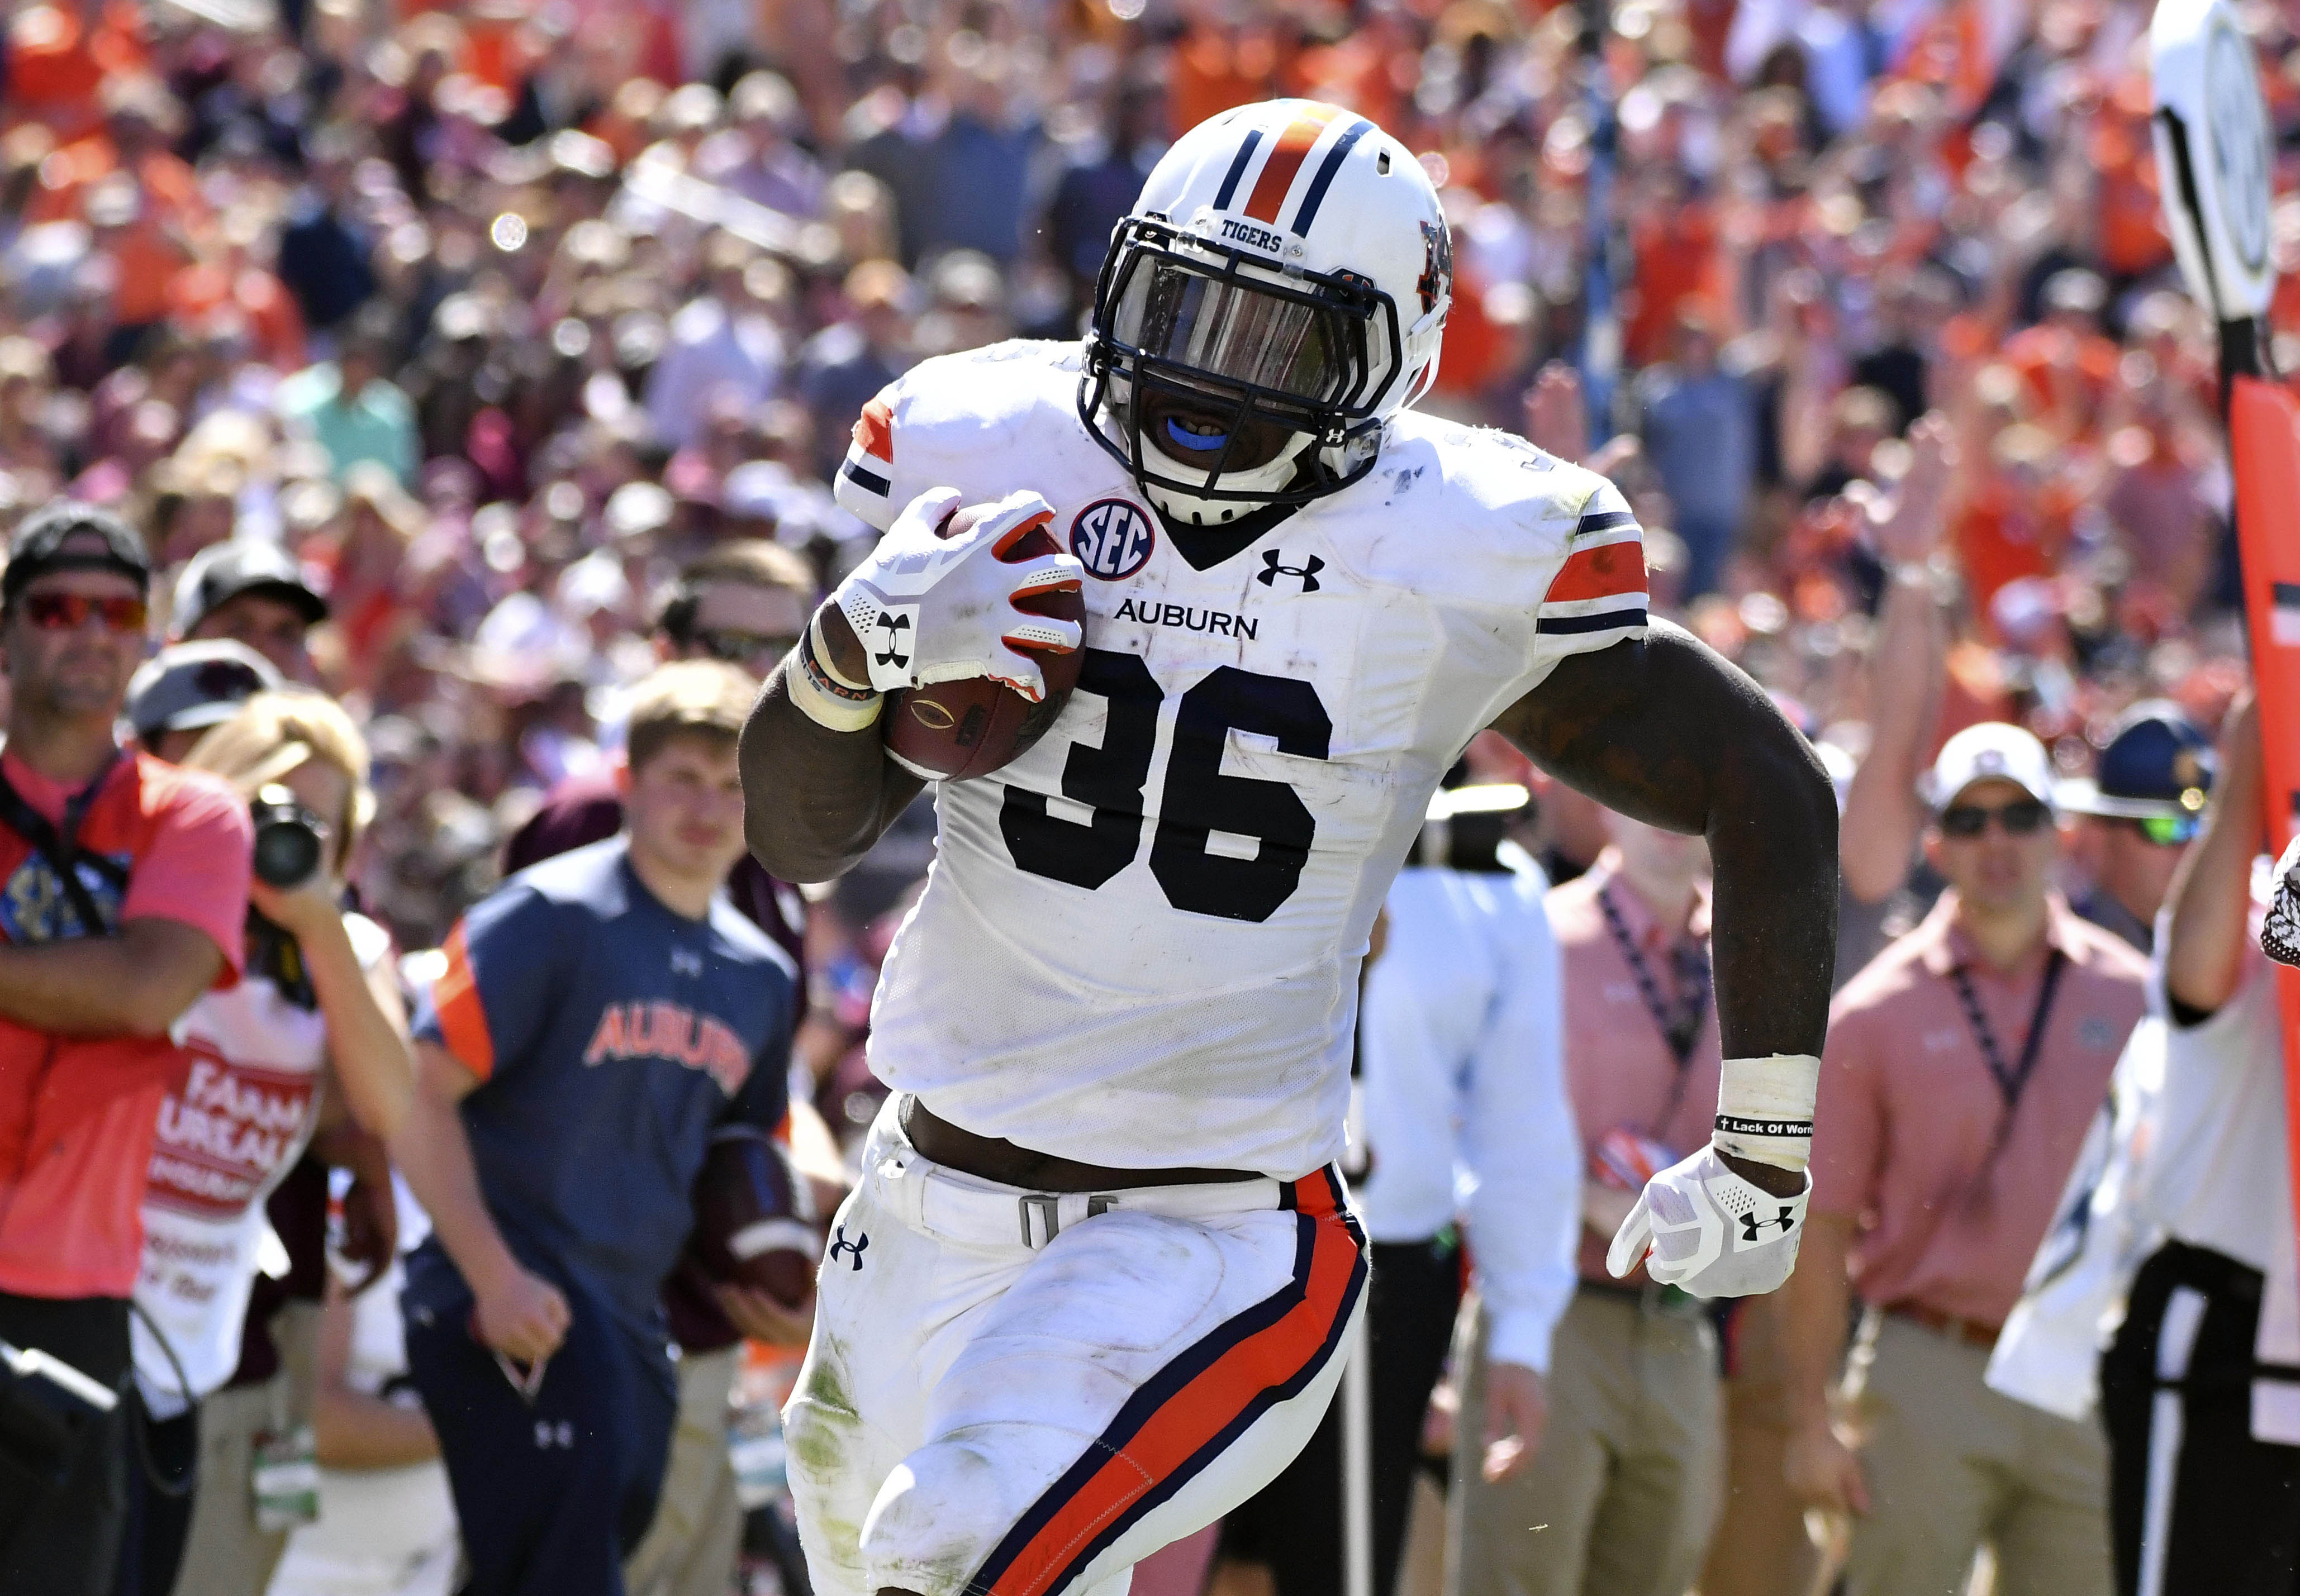 Oct 8, 2016; Starkville, MS, USA; Auburn Tigers running back Kamryn Pettway (36) runs the ball during the second quarter of the game against the Mississippi State Bulldogs at Davis Wade Stadium. Mandatory Credit: Matt Bush-USA TODAY Sports